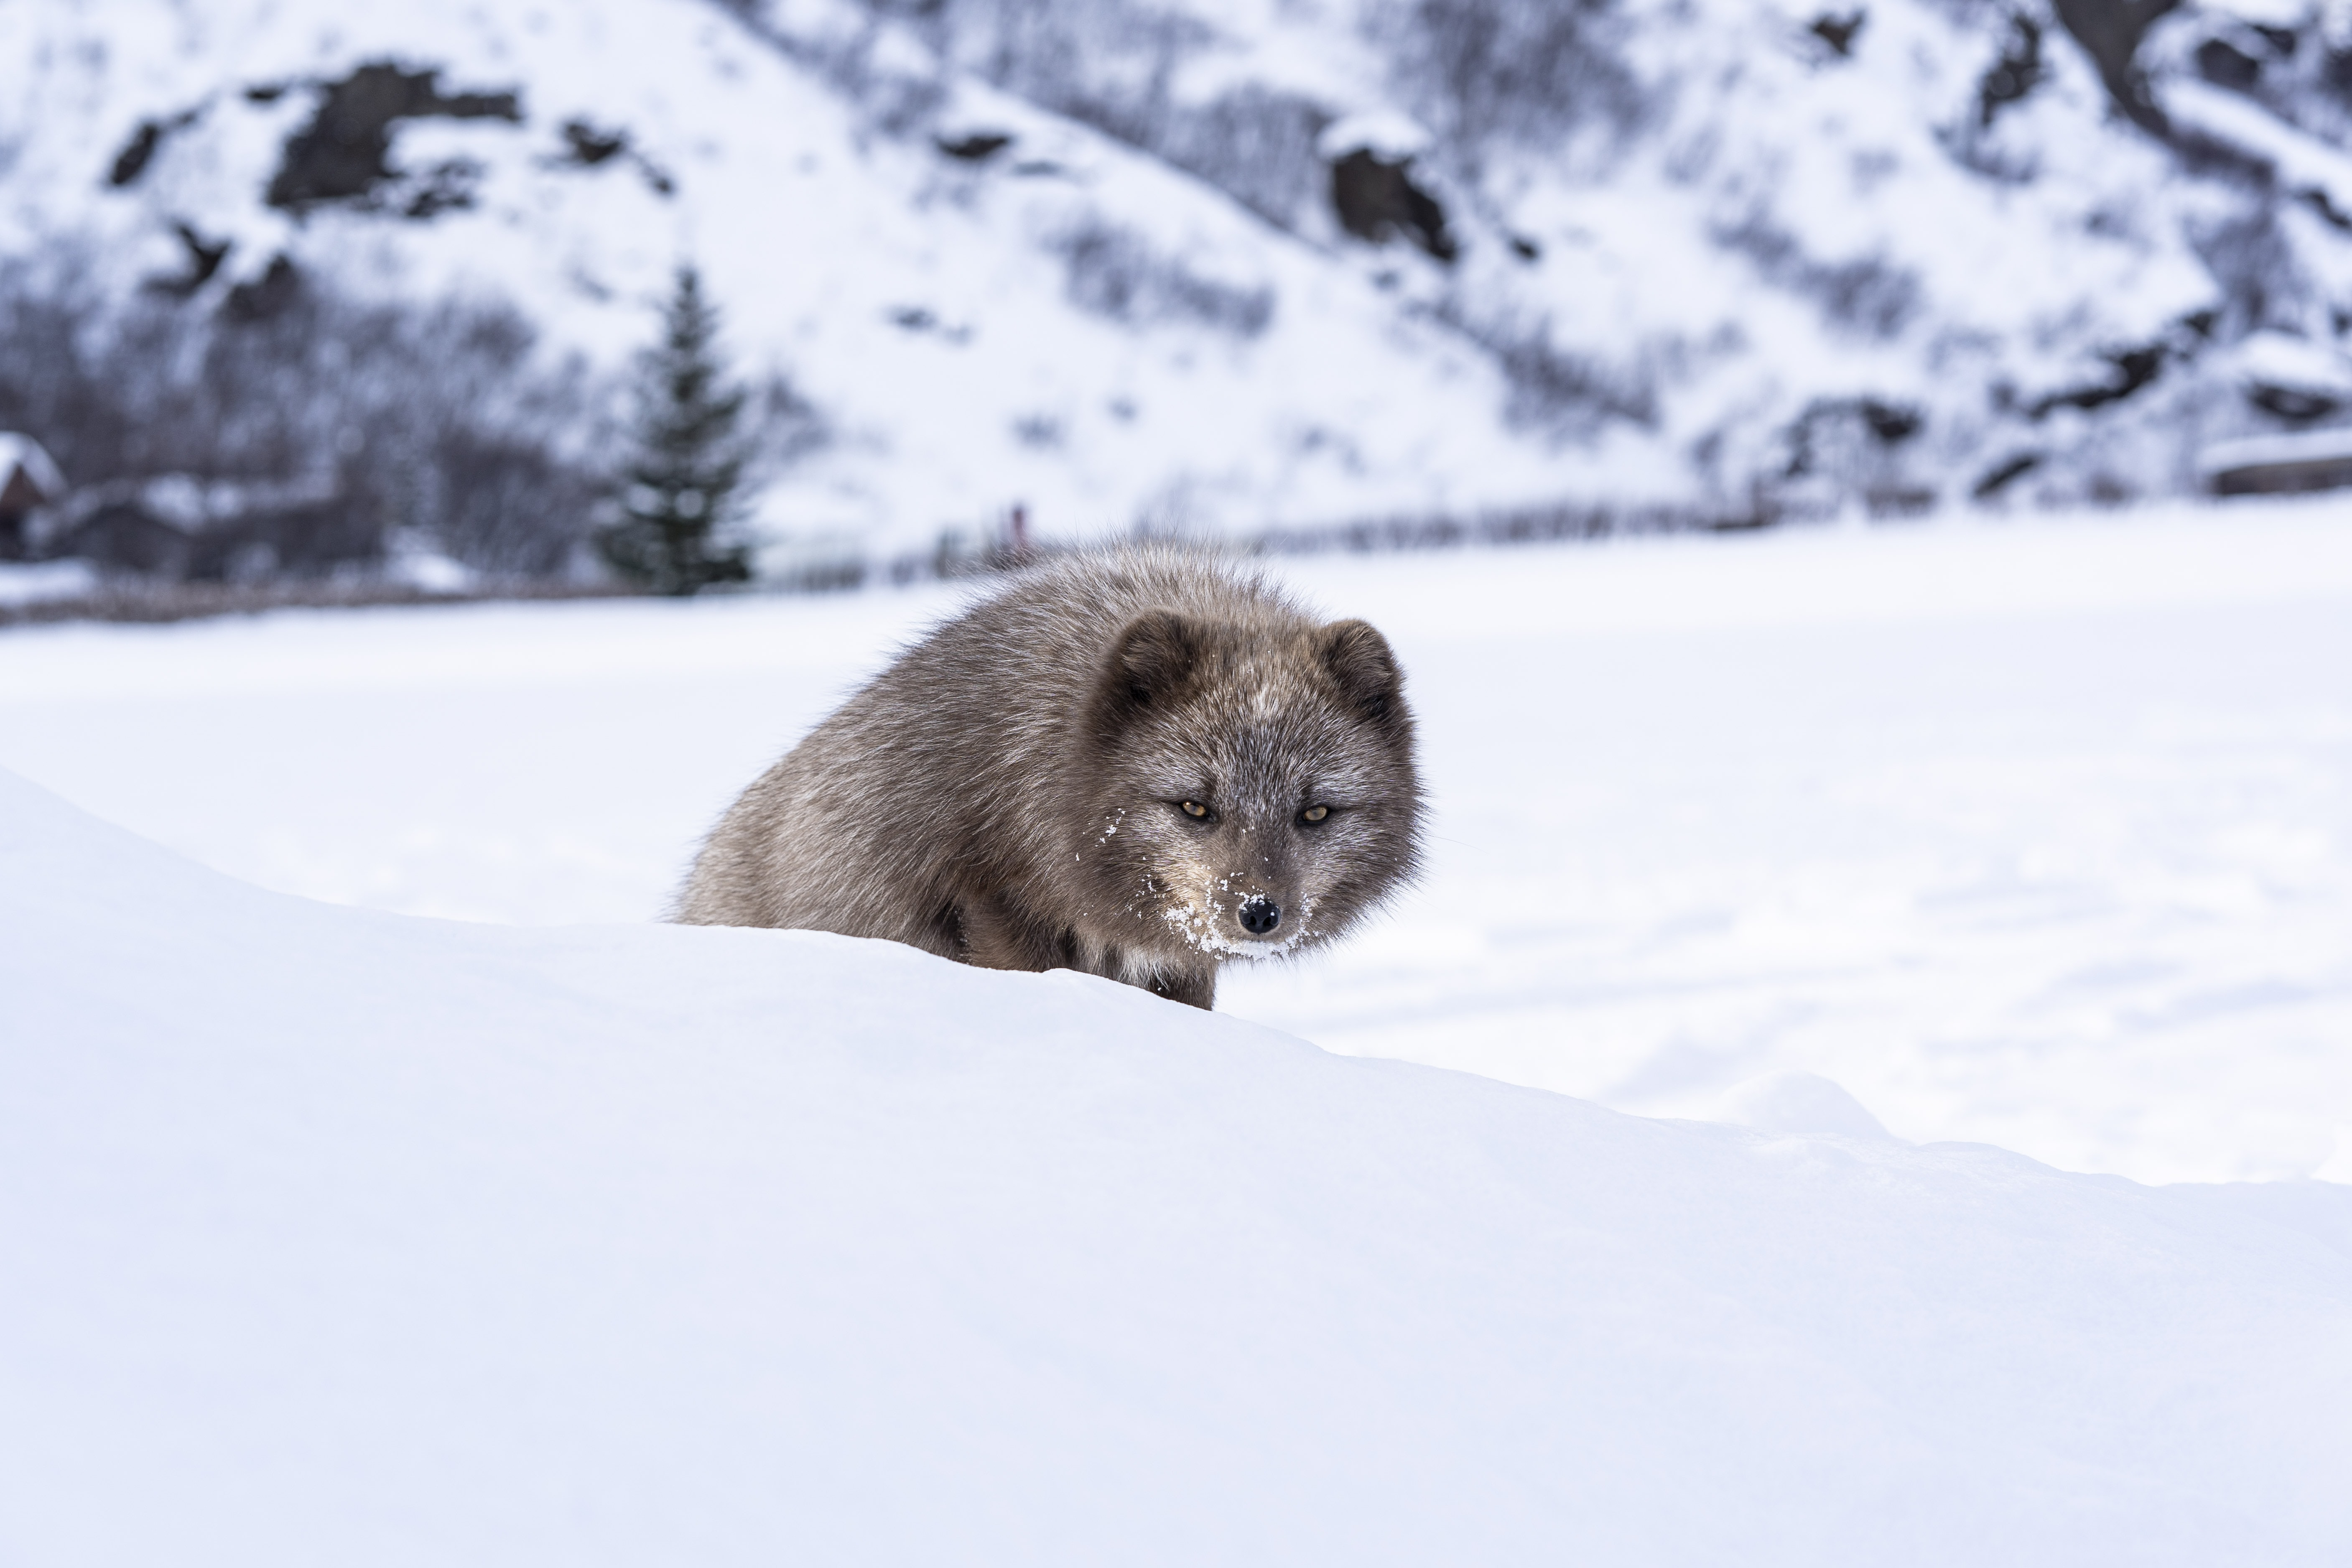 108545 download wallpaper Animals, Mink, Animal, Snow, Cunning, Sly screensavers and pictures for free